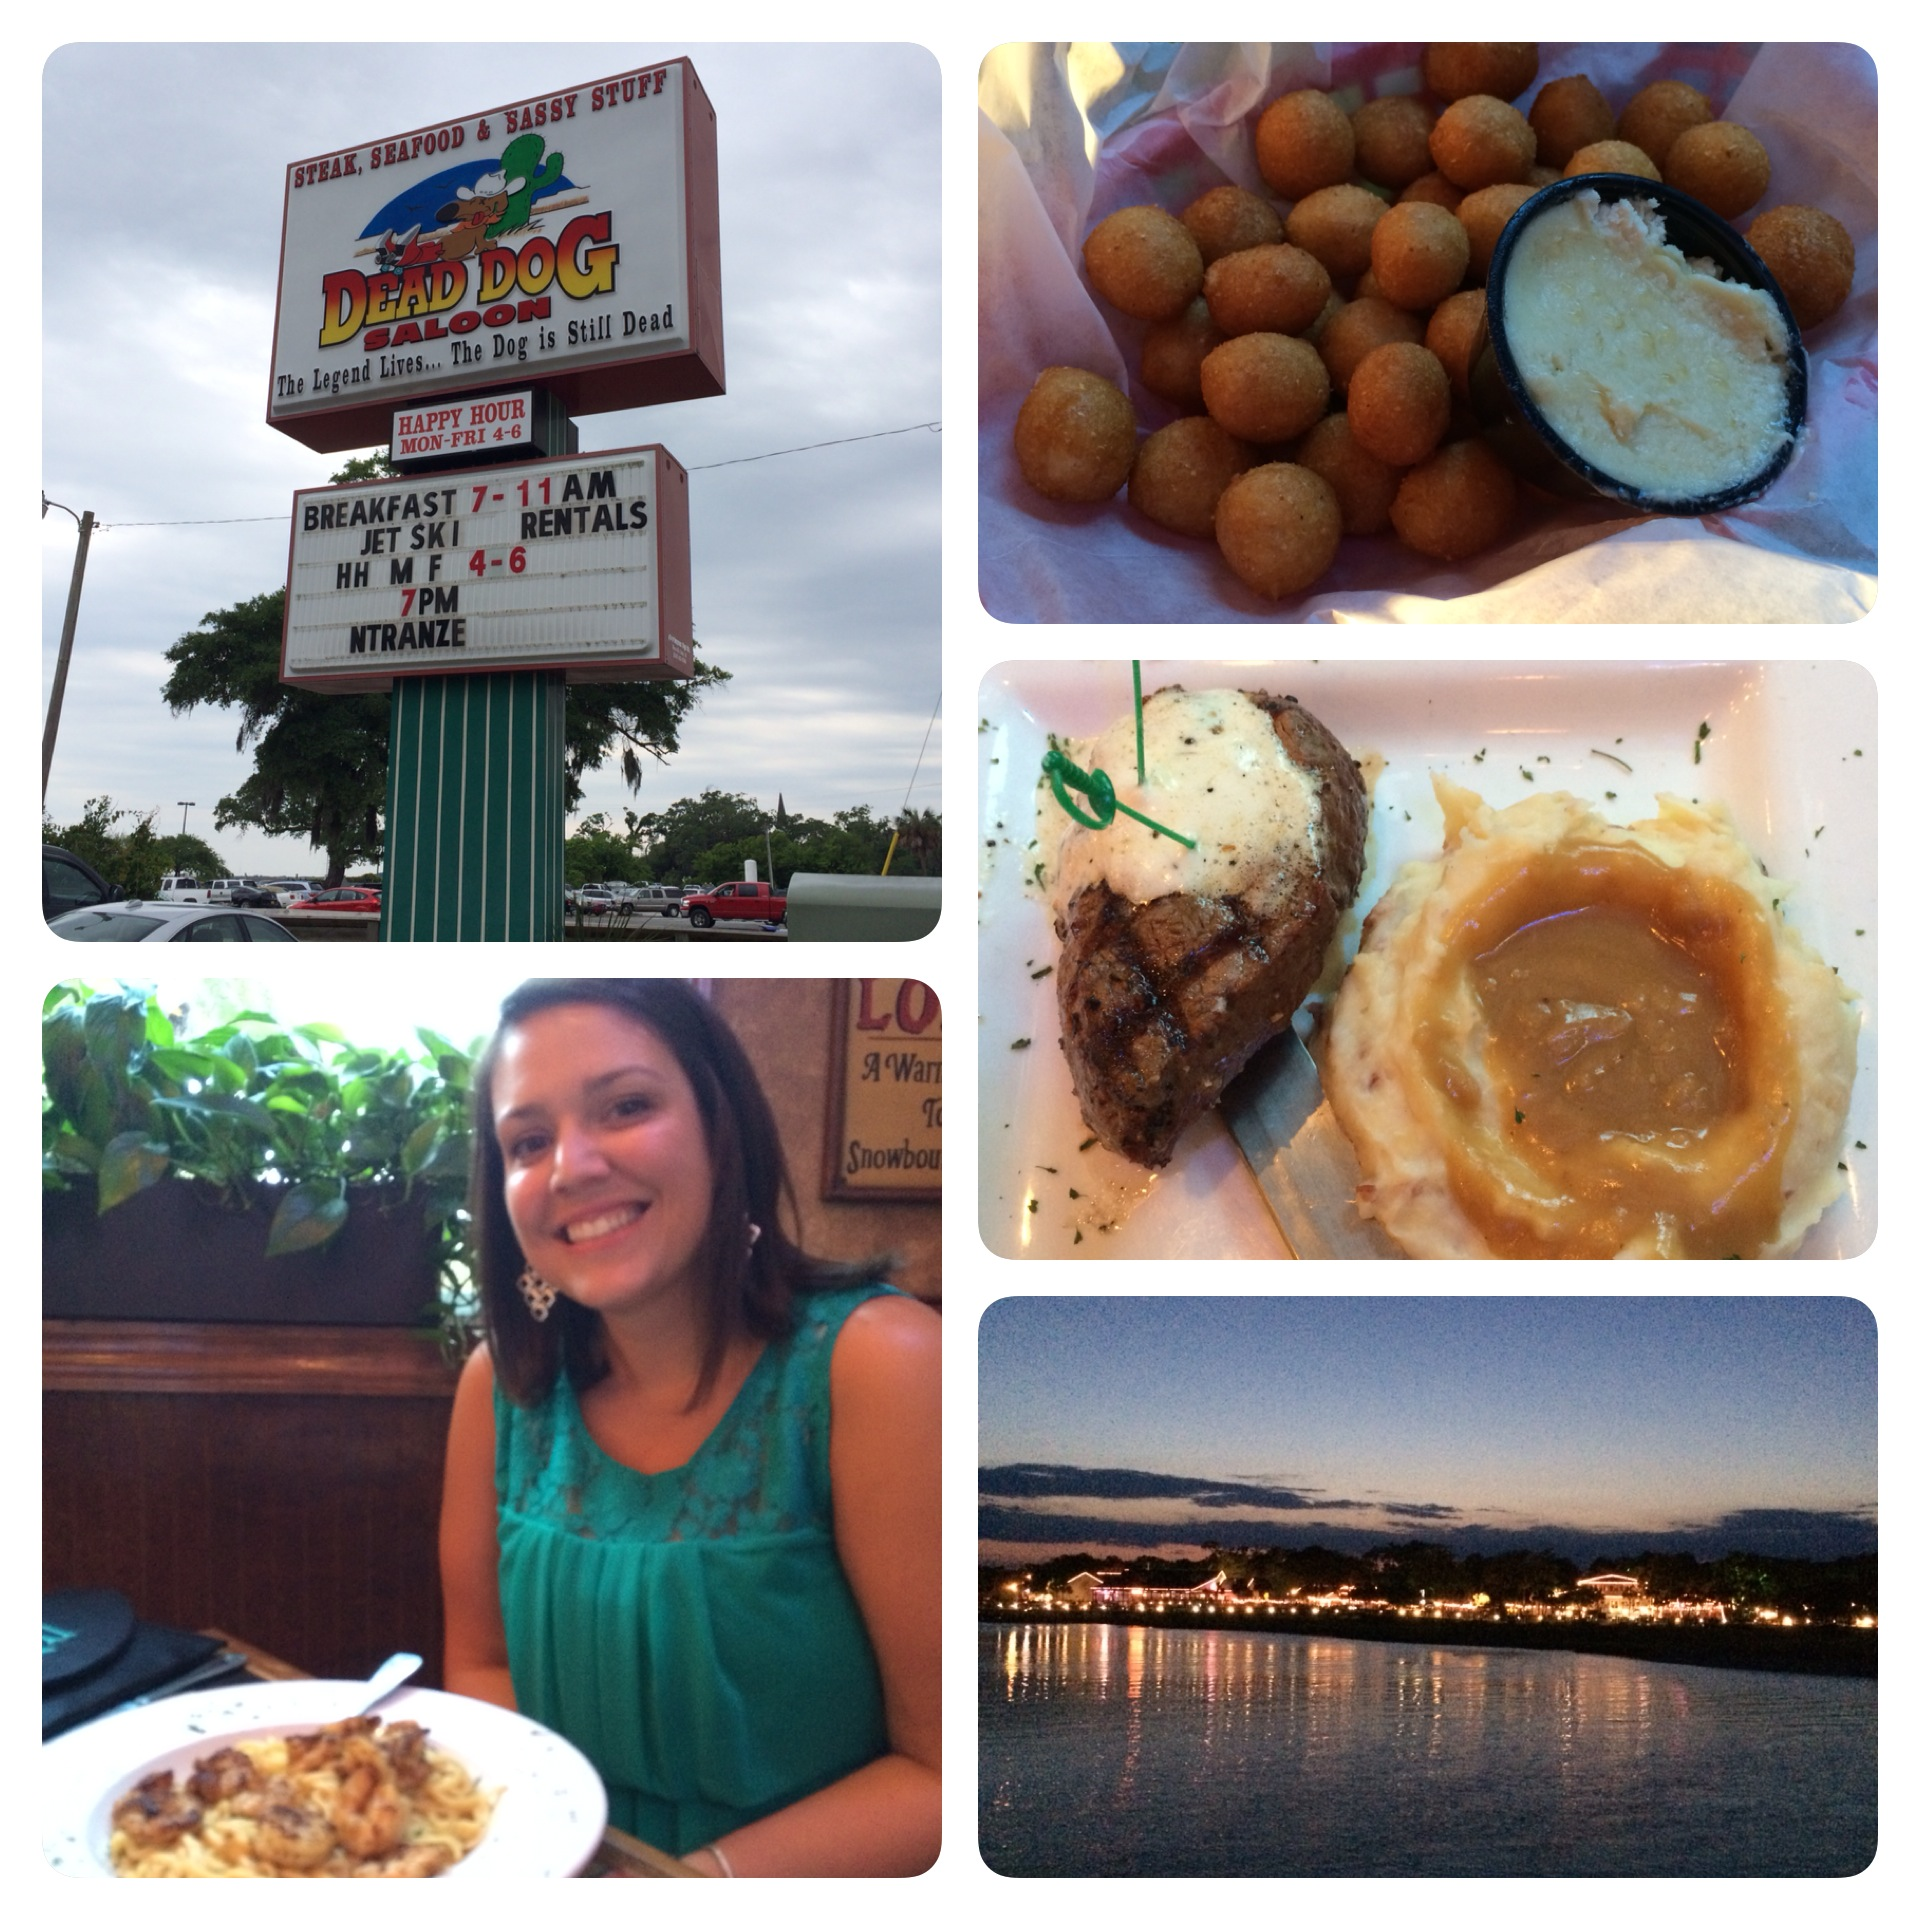 Clockwise: The hush puppies, my amazing steak and mashed potatoes, a view from the Marsh Walk, Sidney and her shrimp pasta, the Dead Dog Saloon sign!